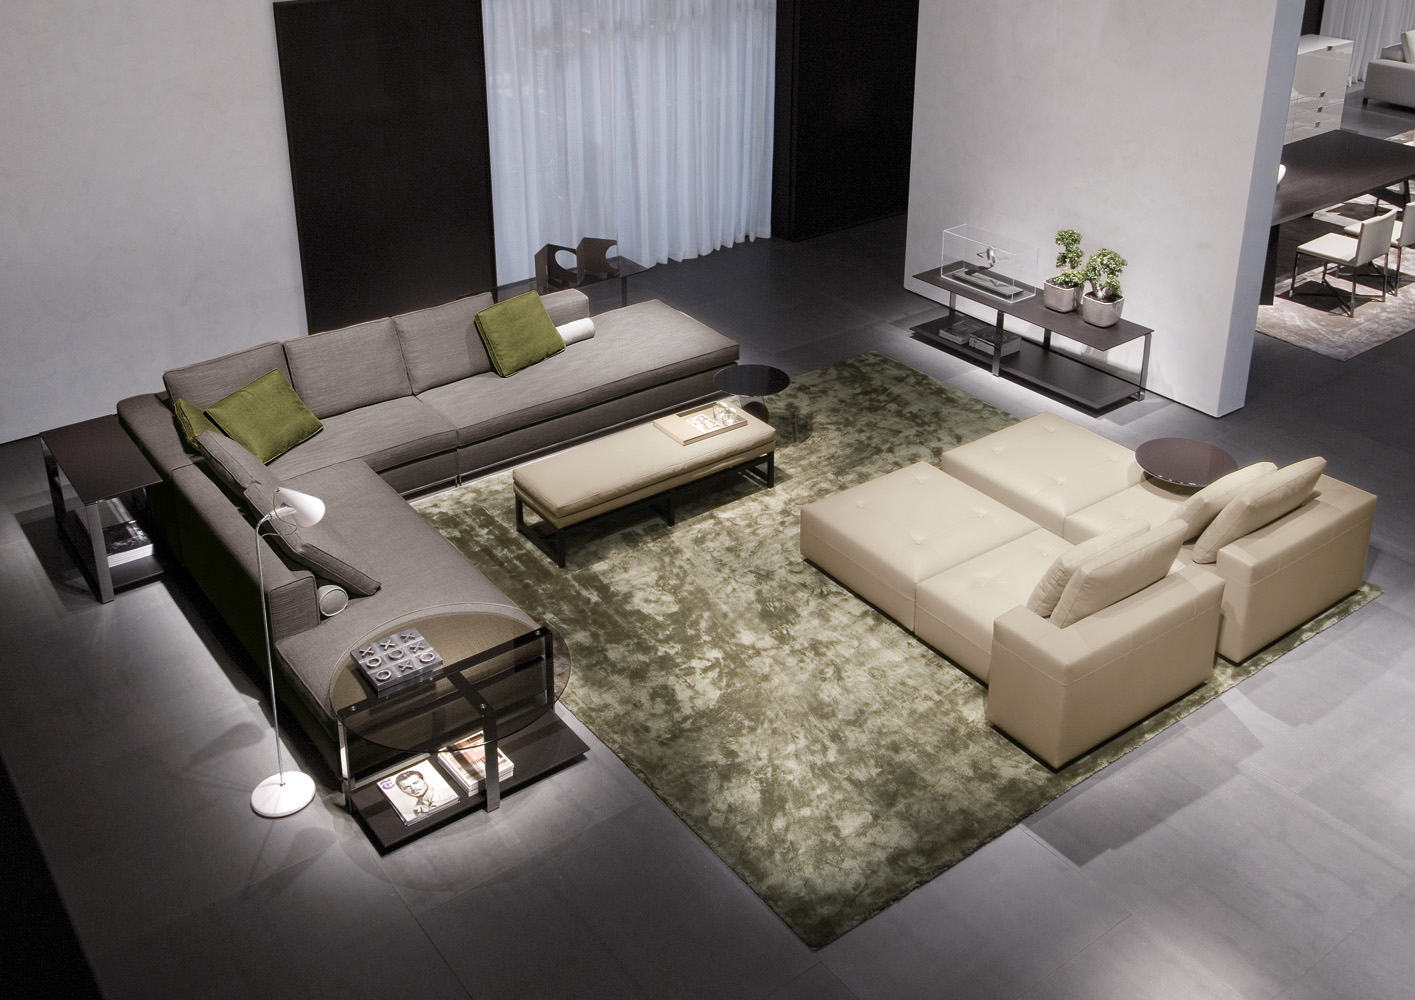 Stunning Divani Minotti Outlet Images - Mosquee-rodez.com - mosquee ...